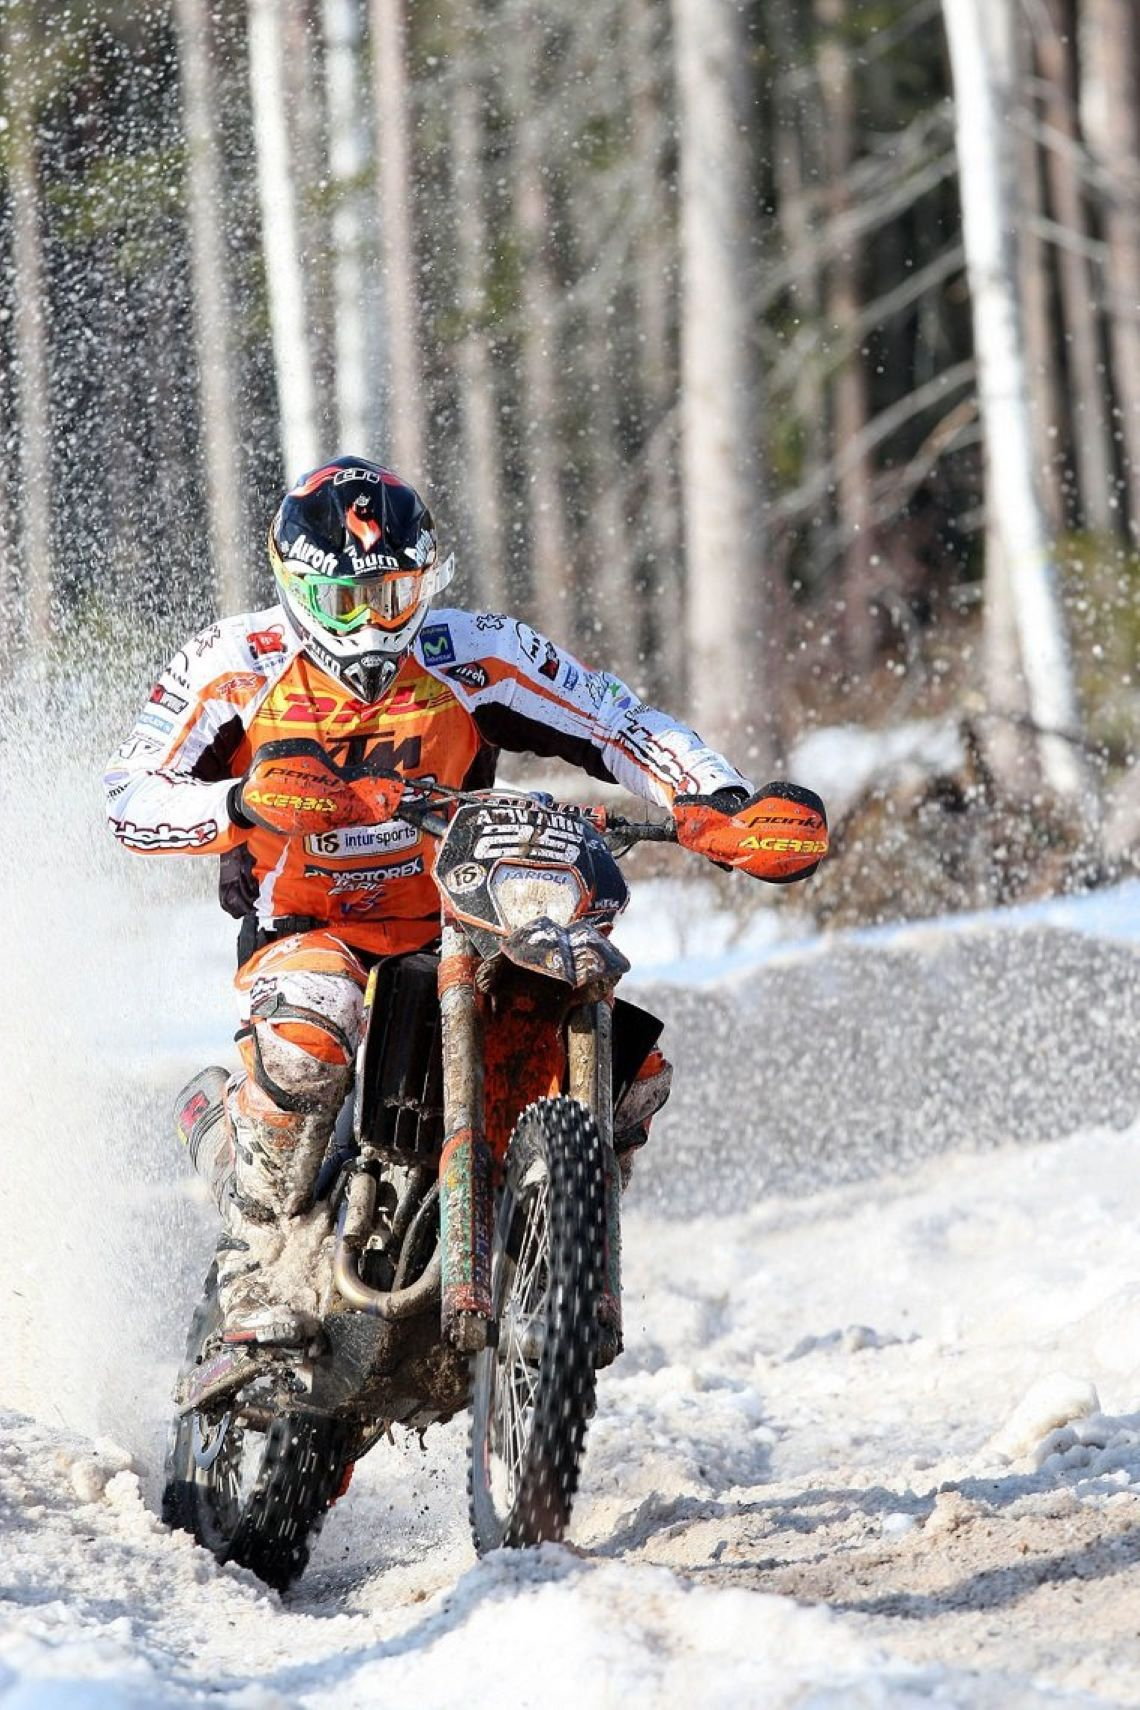 ivan.cervantes-by-Llewelyn-Pavey-during-his-photo-sesh-at-the-his-first-ever-World-Enduro-Championship